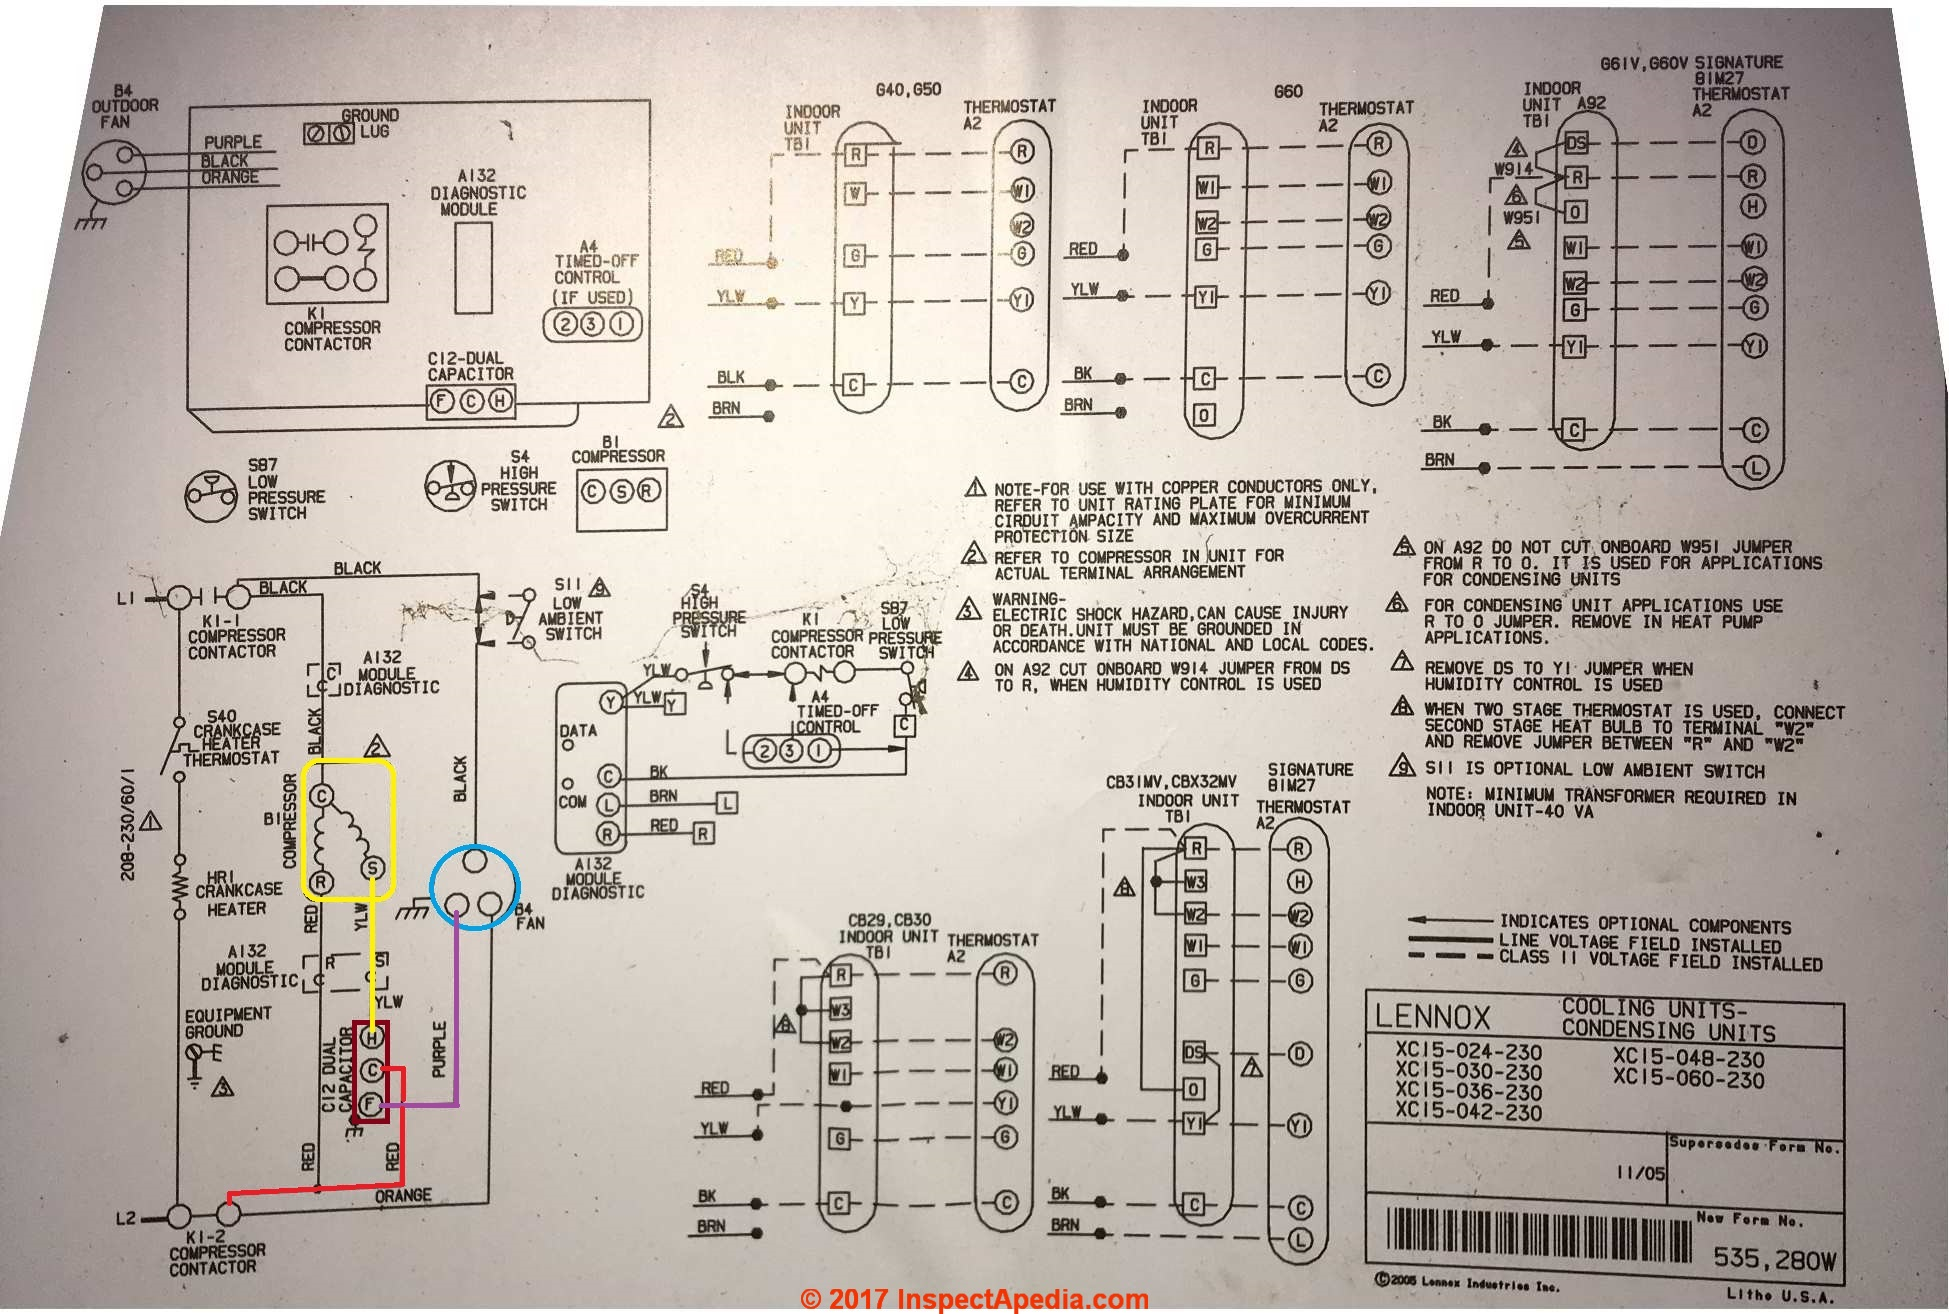 lennox xc15 condenser unit wiring diagram (c) inspectapedia com showing  capacitor connections